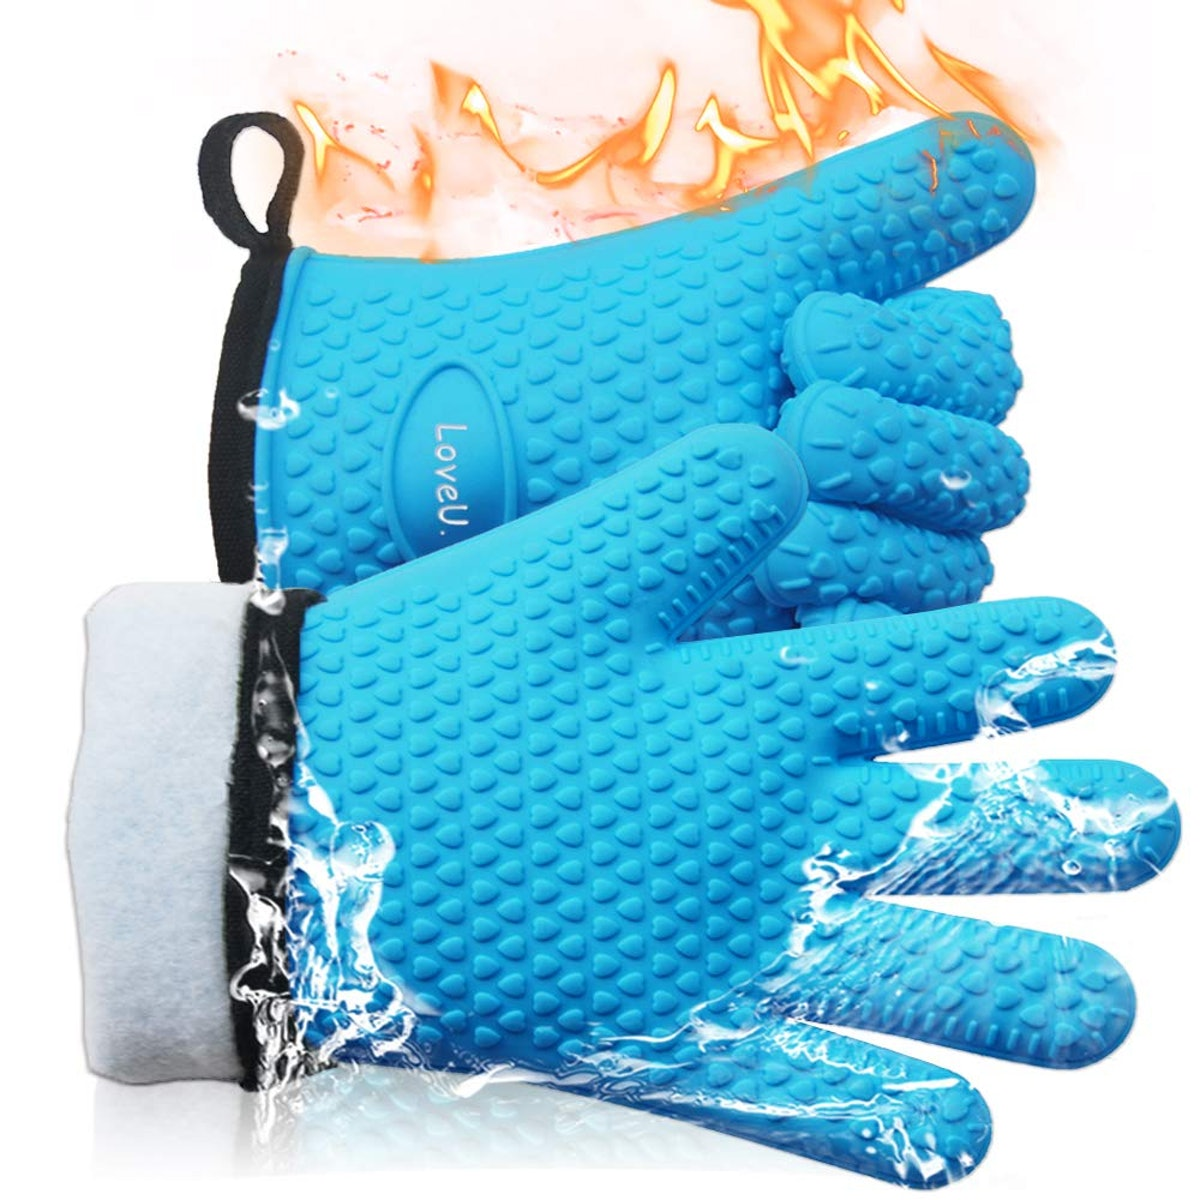 LoveU. Oven Mitts - Silicone and Cotton Double-layer Heat Resistant Gloves